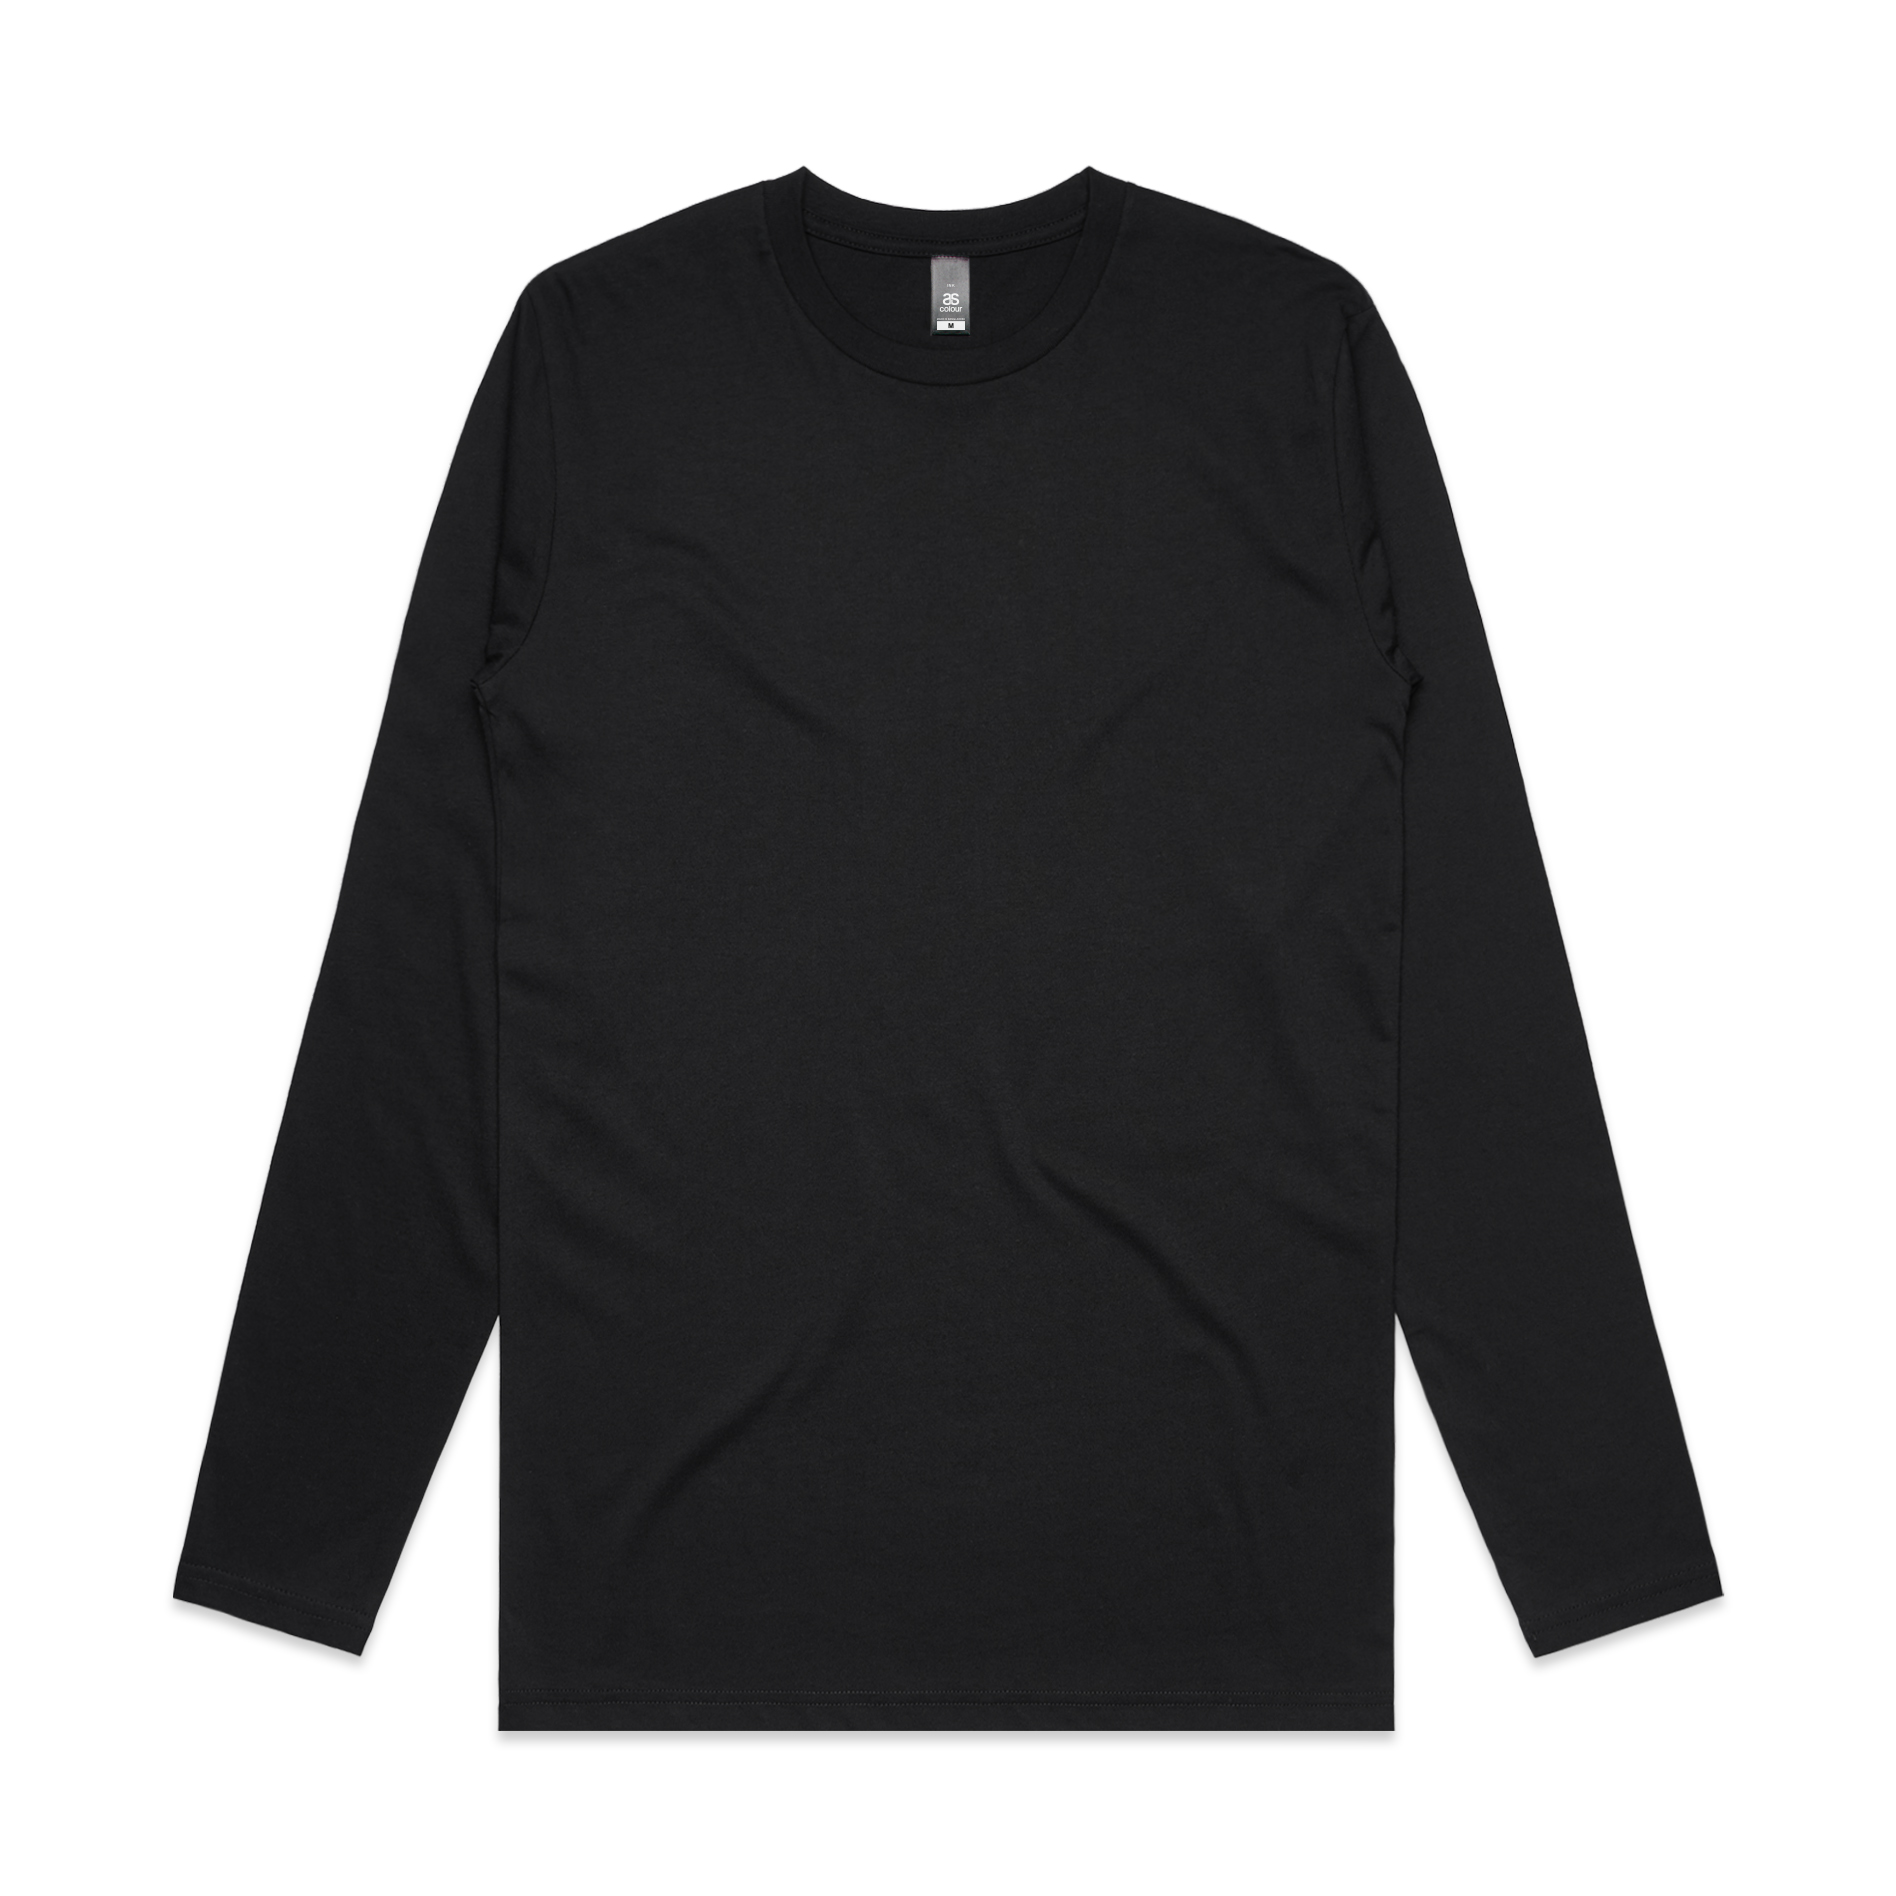 5009 INK LONG SLEEVE TEE